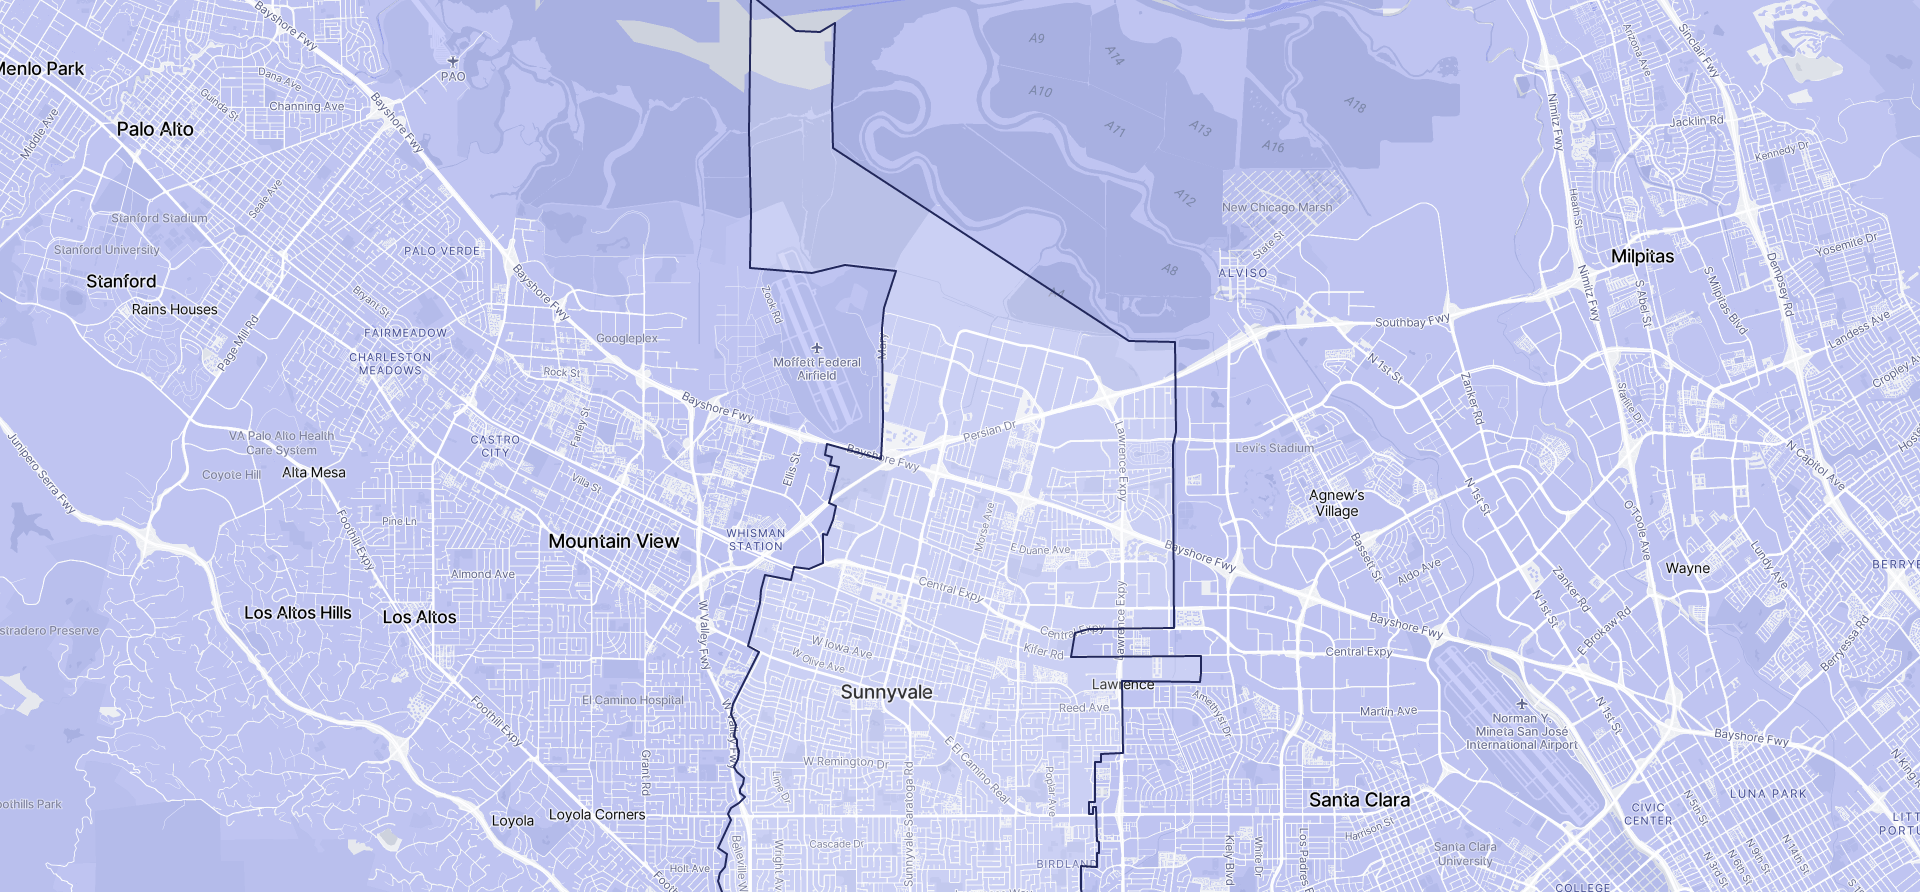 Image of Sunnyvale boundaries on a map.